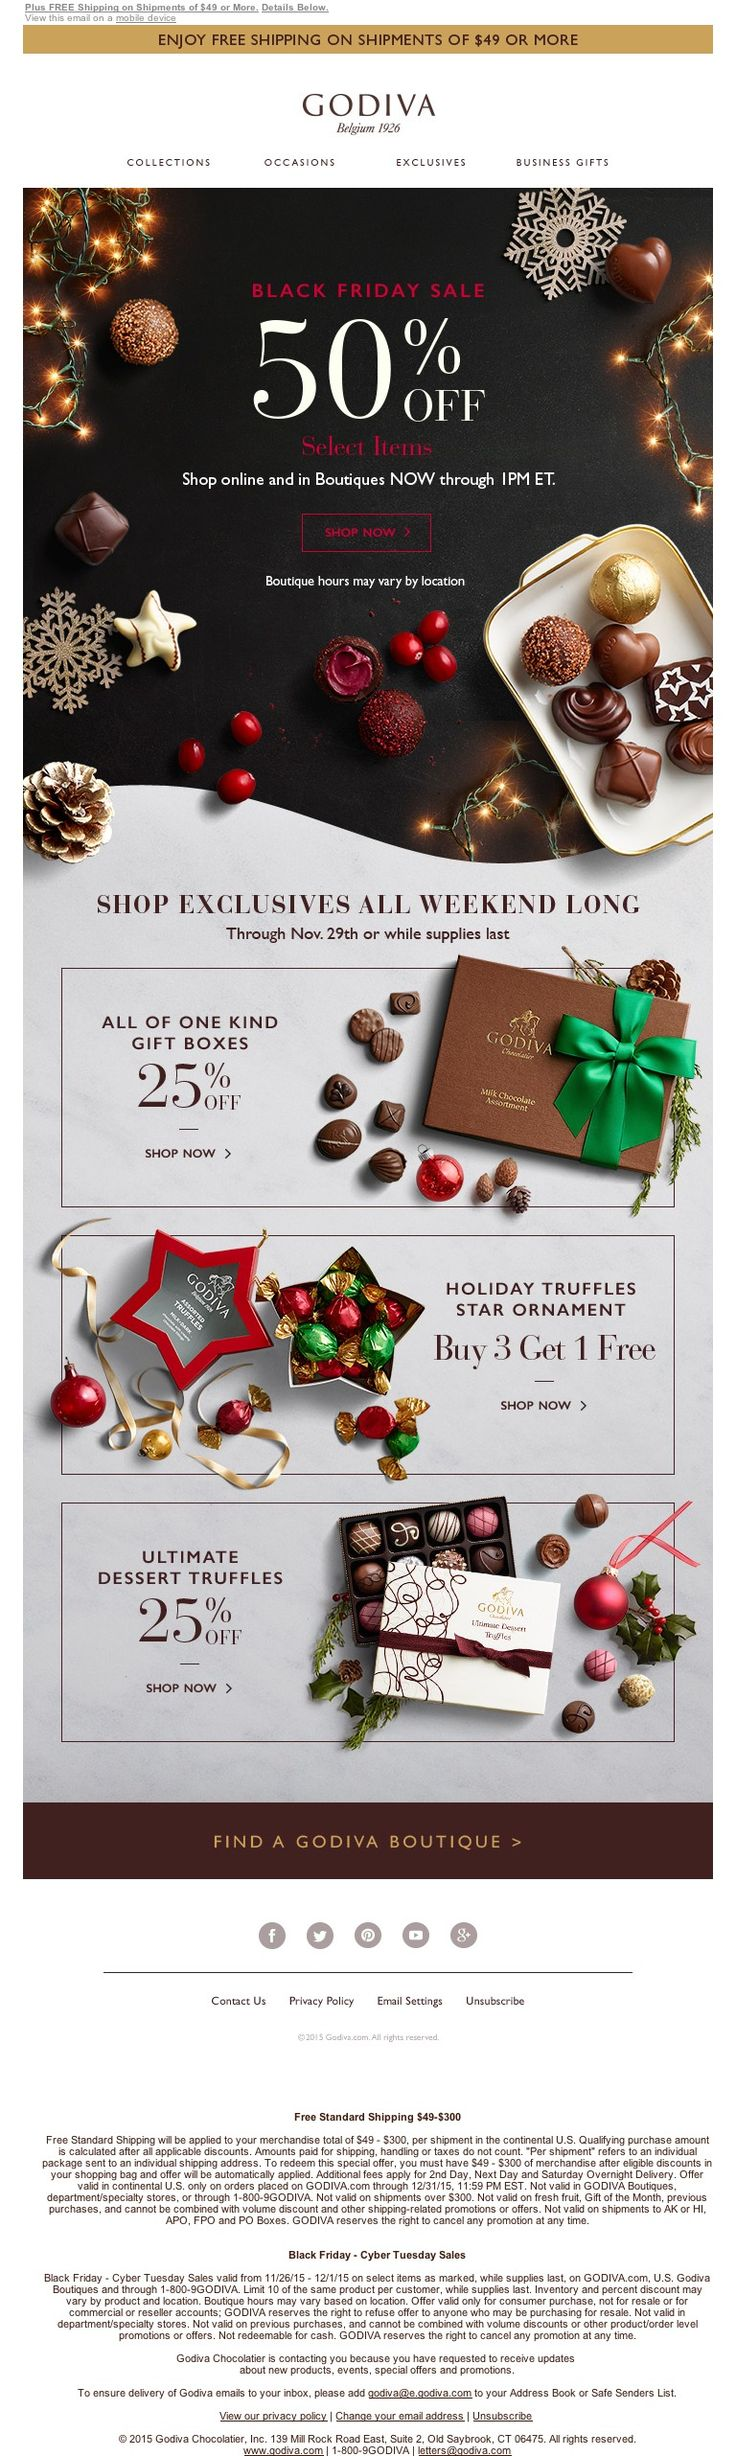 Godiva - 11/27/15 SL: HOURS LEFT: 50% Off Black Friday Sale FREE Shipping